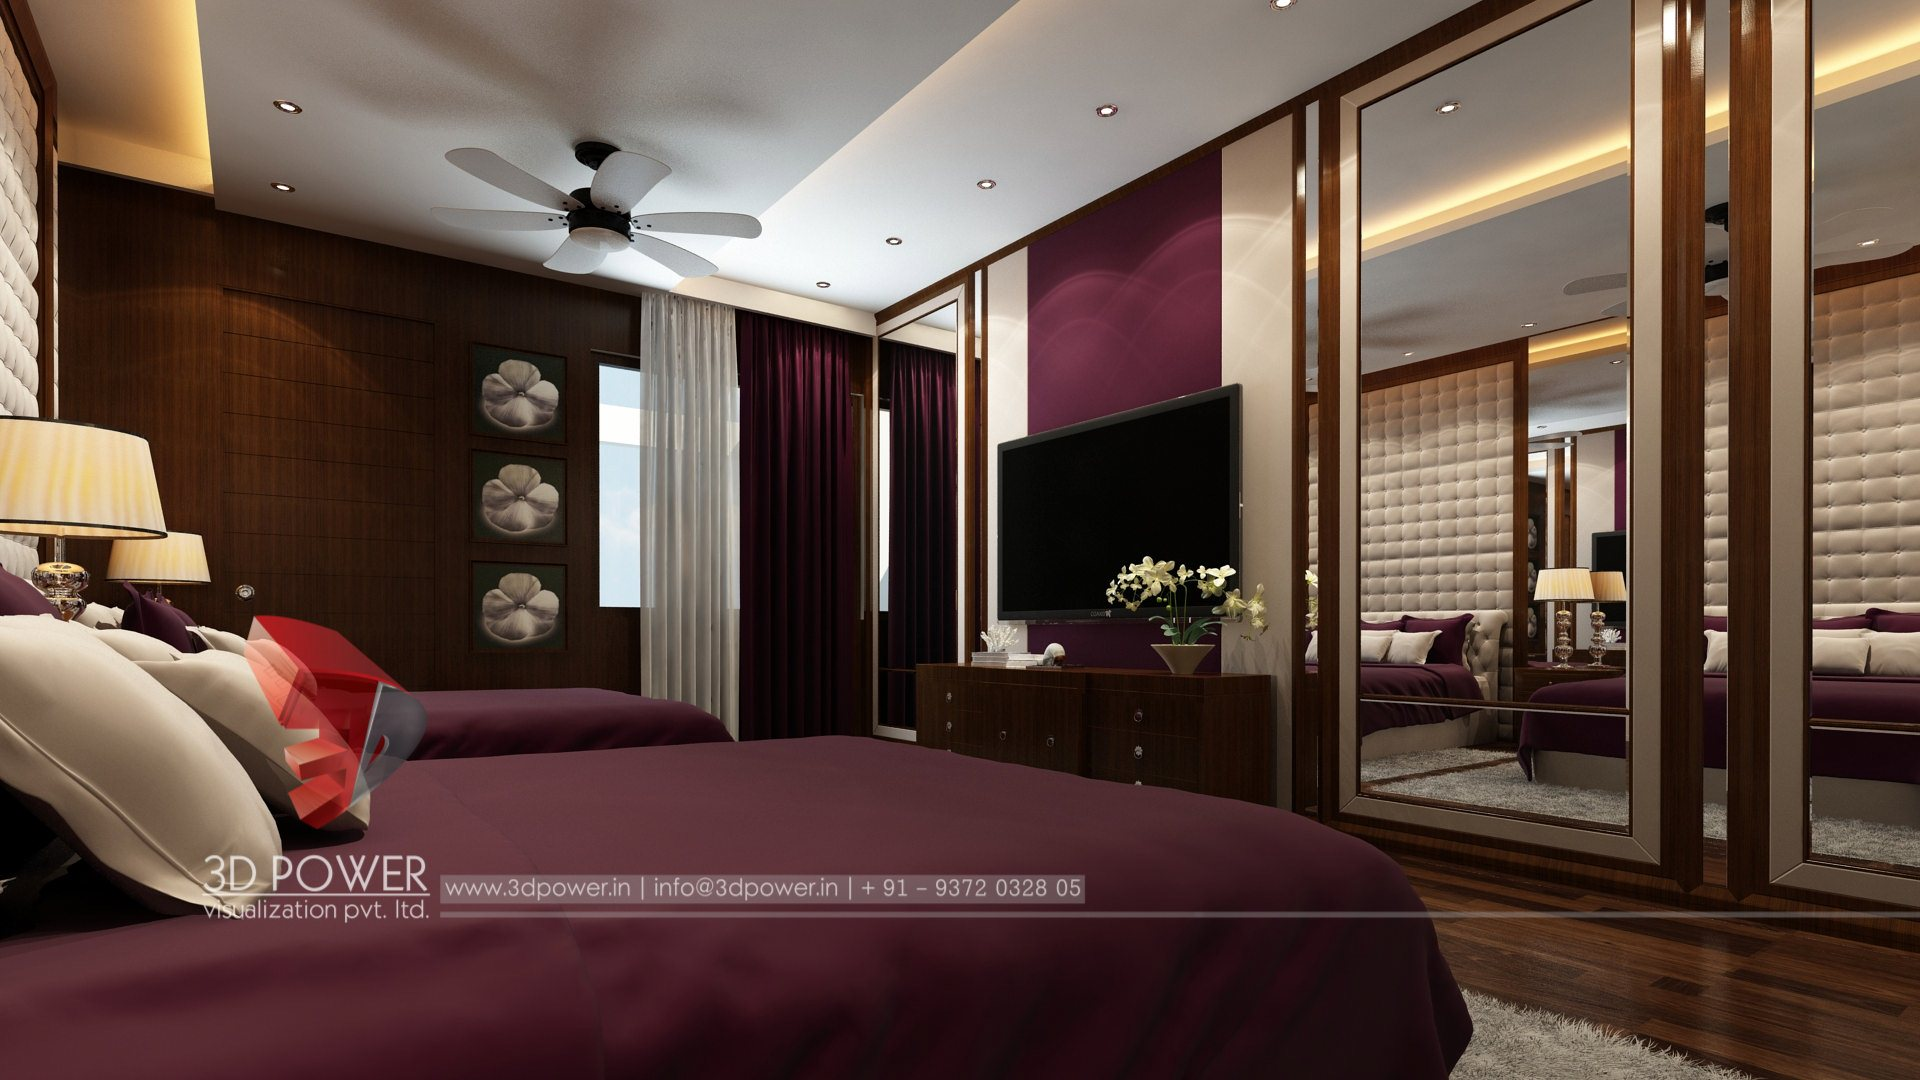 3d interior rendering service 3d power - How to get a job as an interior decorator ...